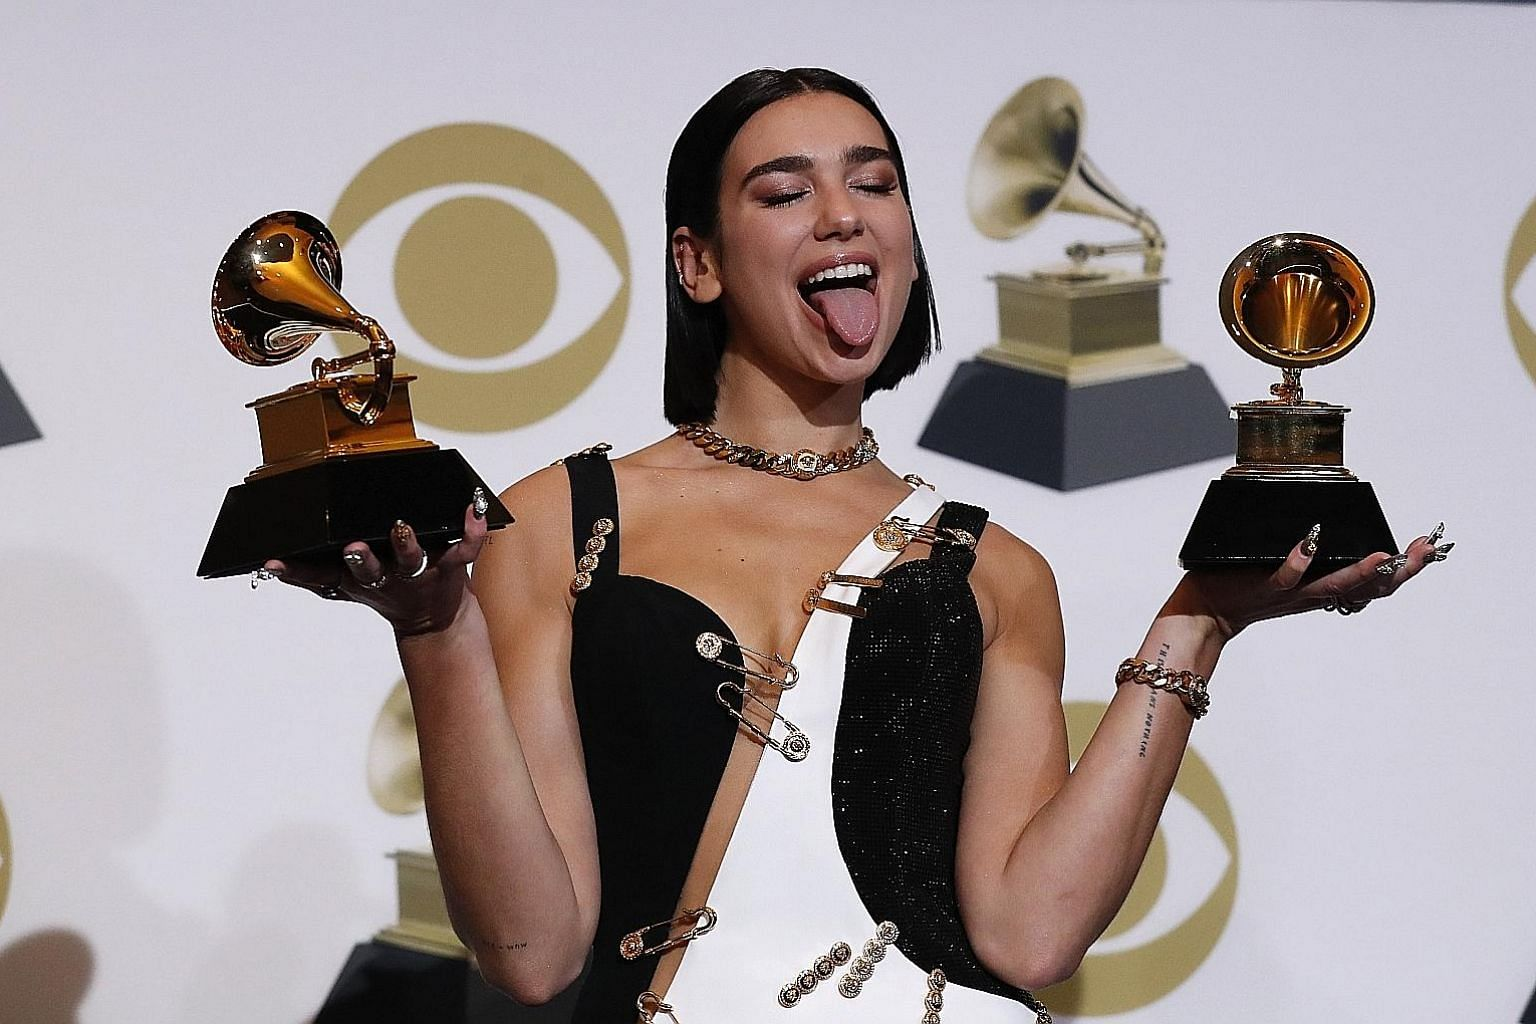 (Above) K-pop juggernauts BTS are the first South Korean act to present an award at the Grammys, while pop singer Camila Cabello (left, with singer Ricky Martin) makes history as the first Latin act to open the Grammys. Singer-songwriter Brandi Carli